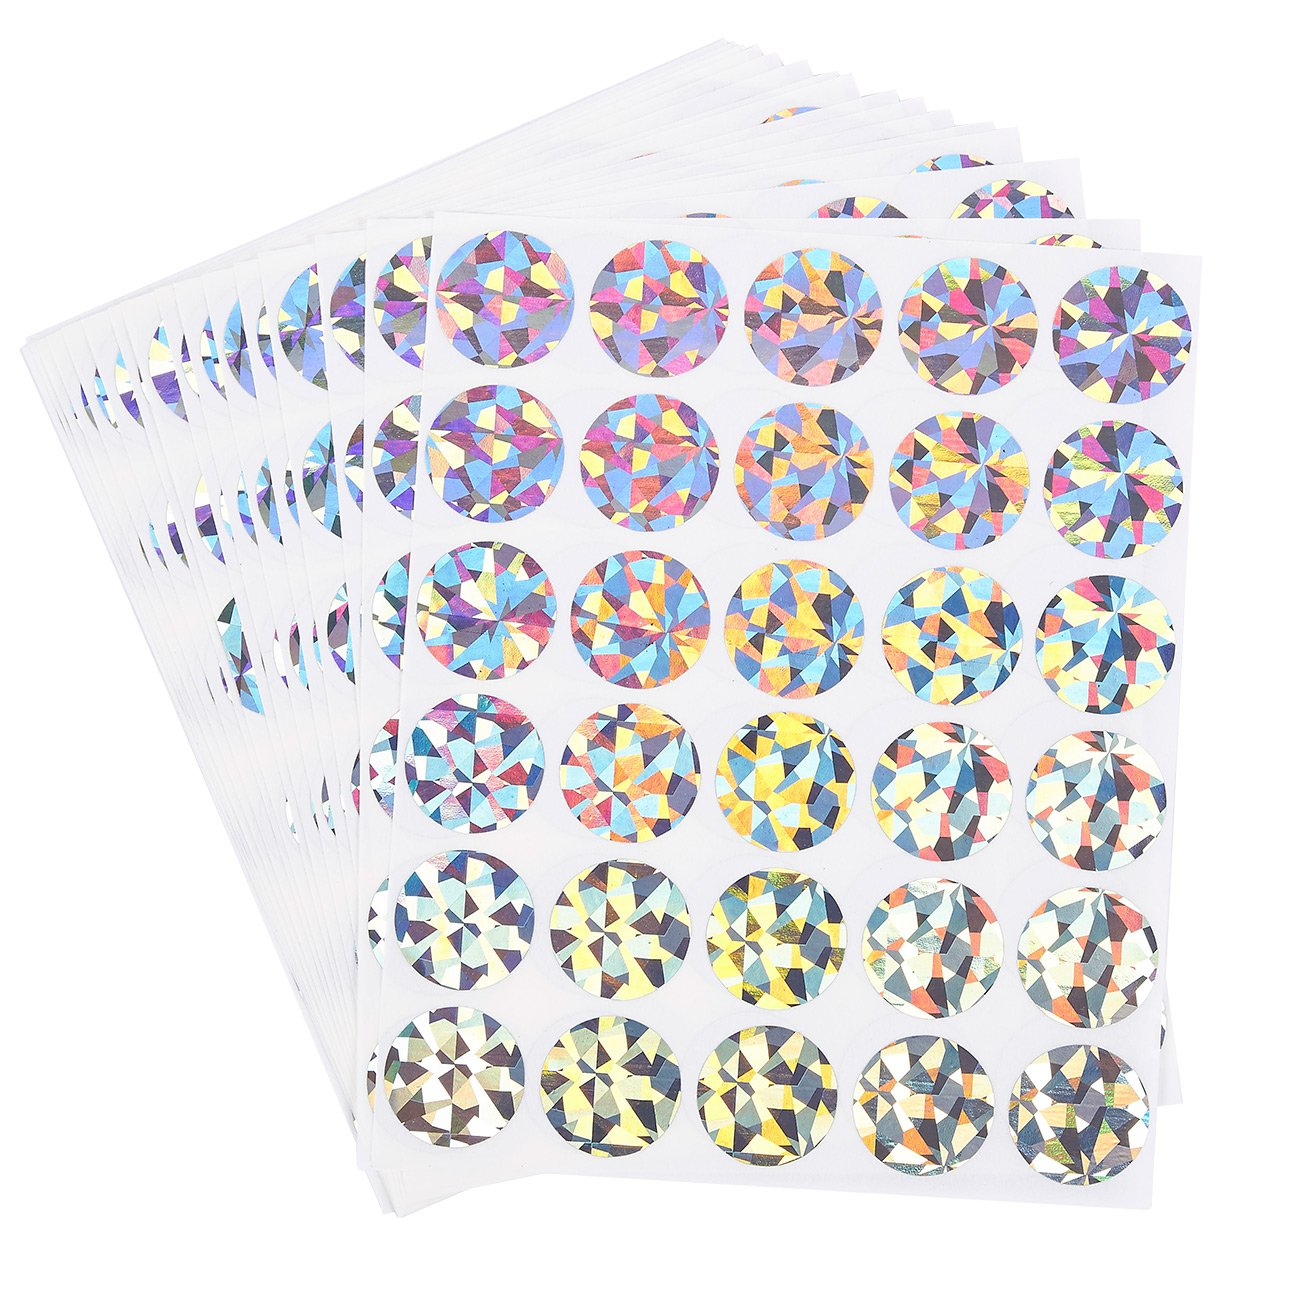 Scratch off stickers 510 pack round sticker labels self adhesive peel and stick diy circle labels for wedding games fundraisers promotions holographic